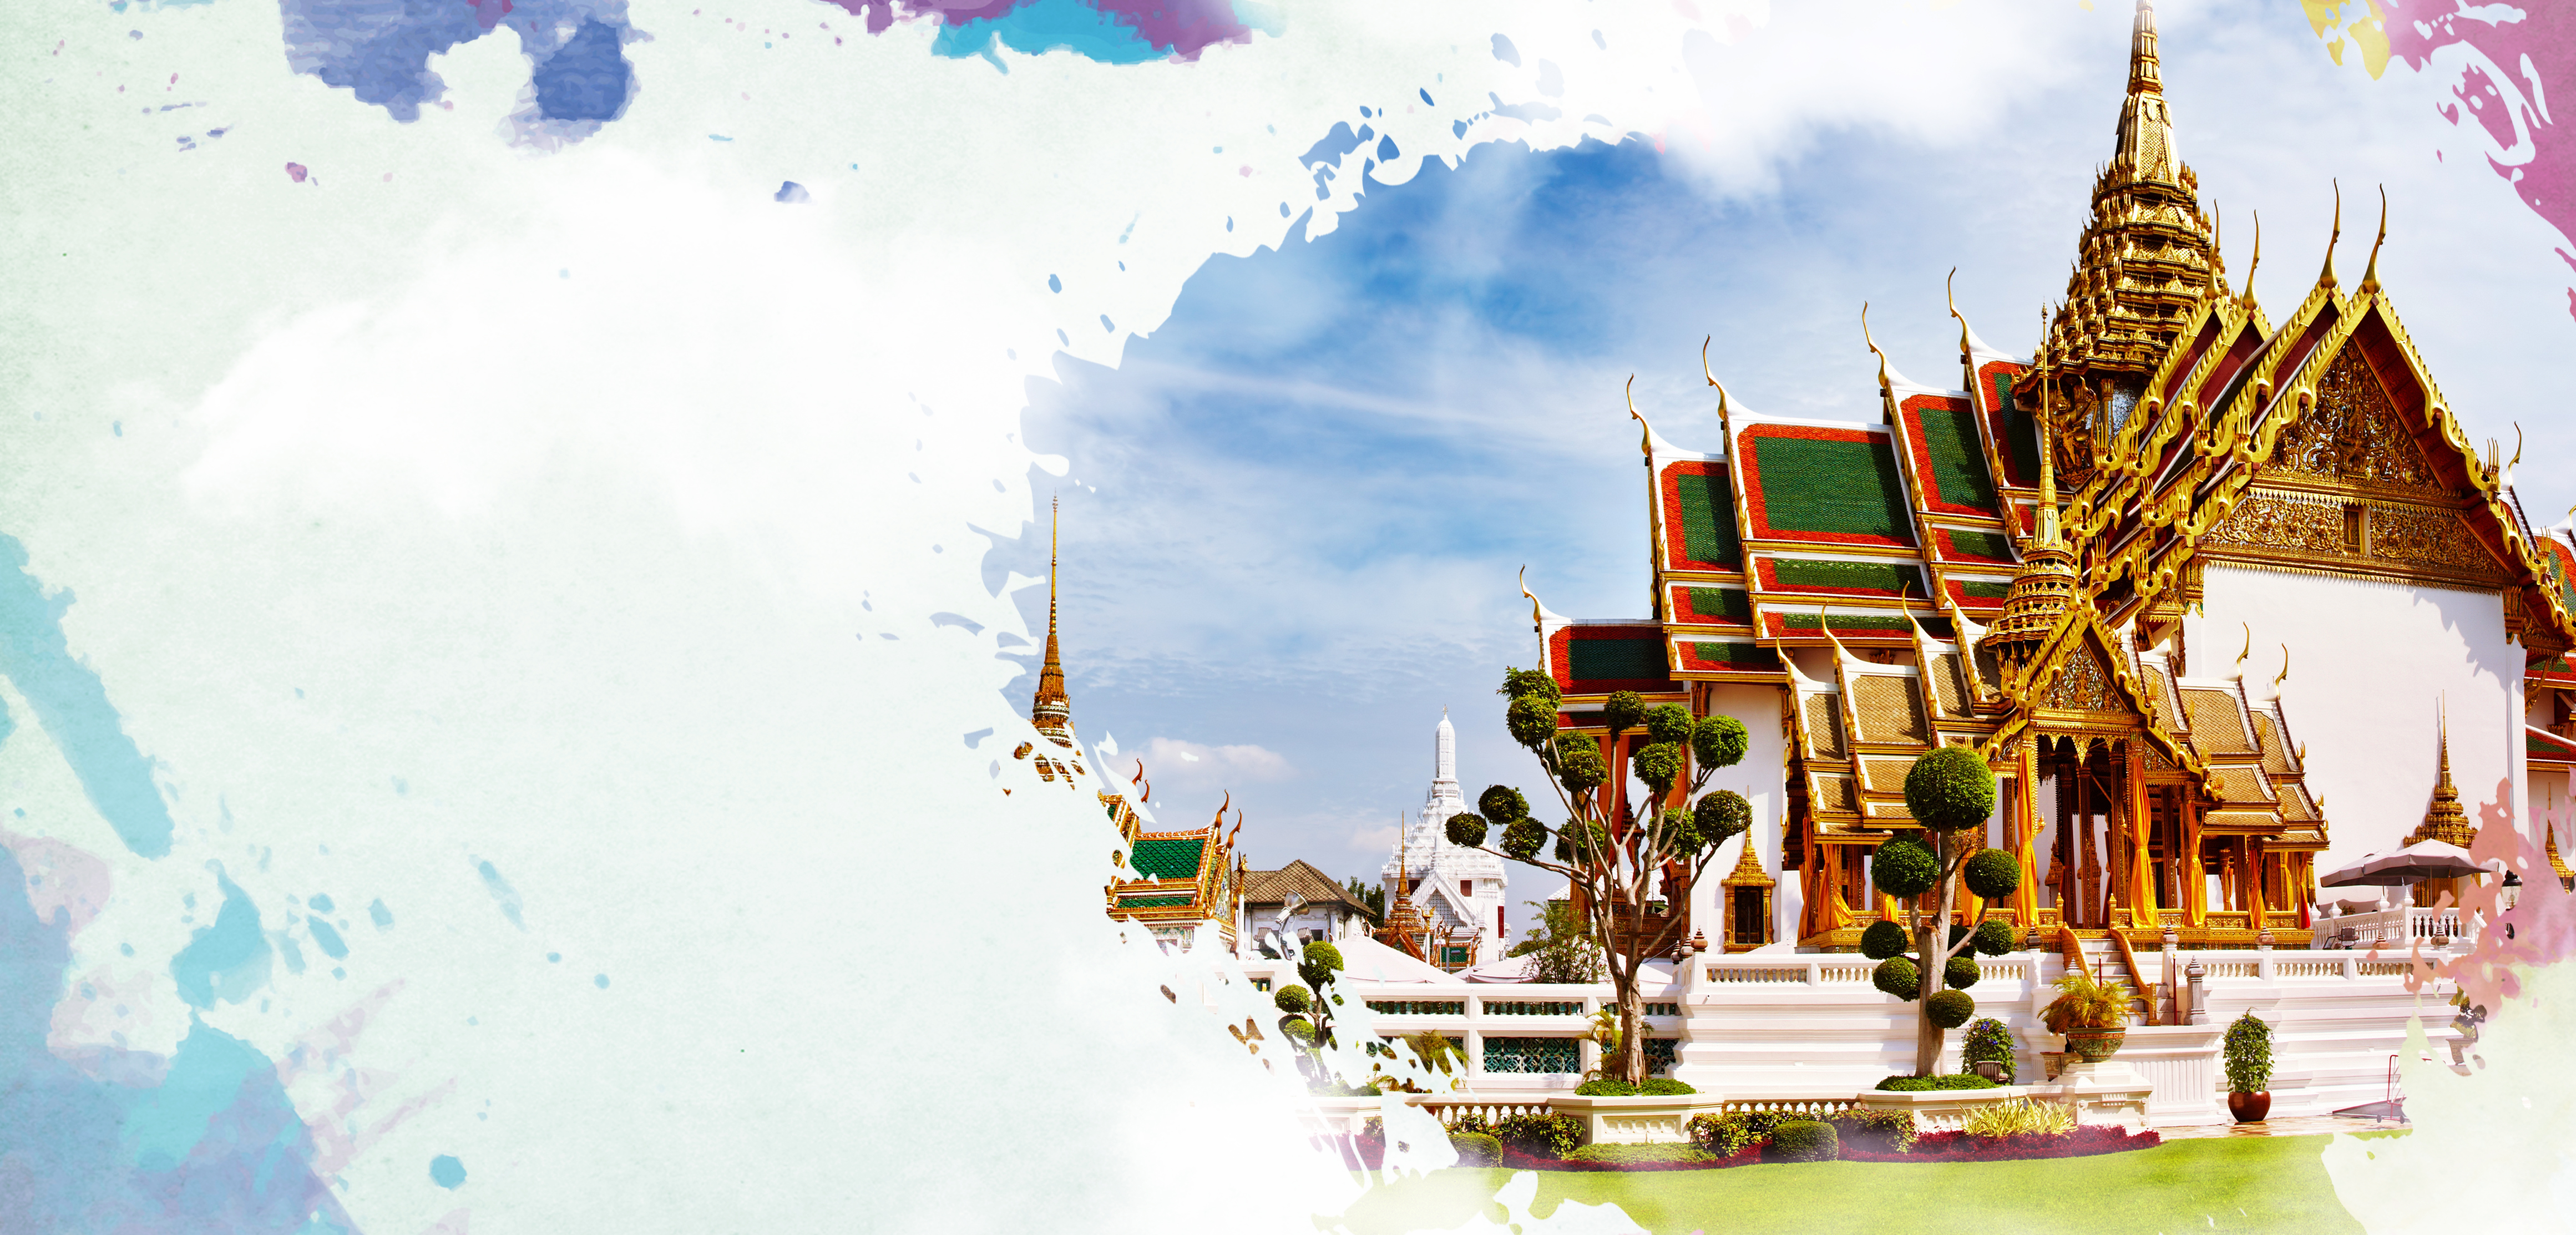 thai travel poster background material  thailand  krabi  bangkok background image for free download